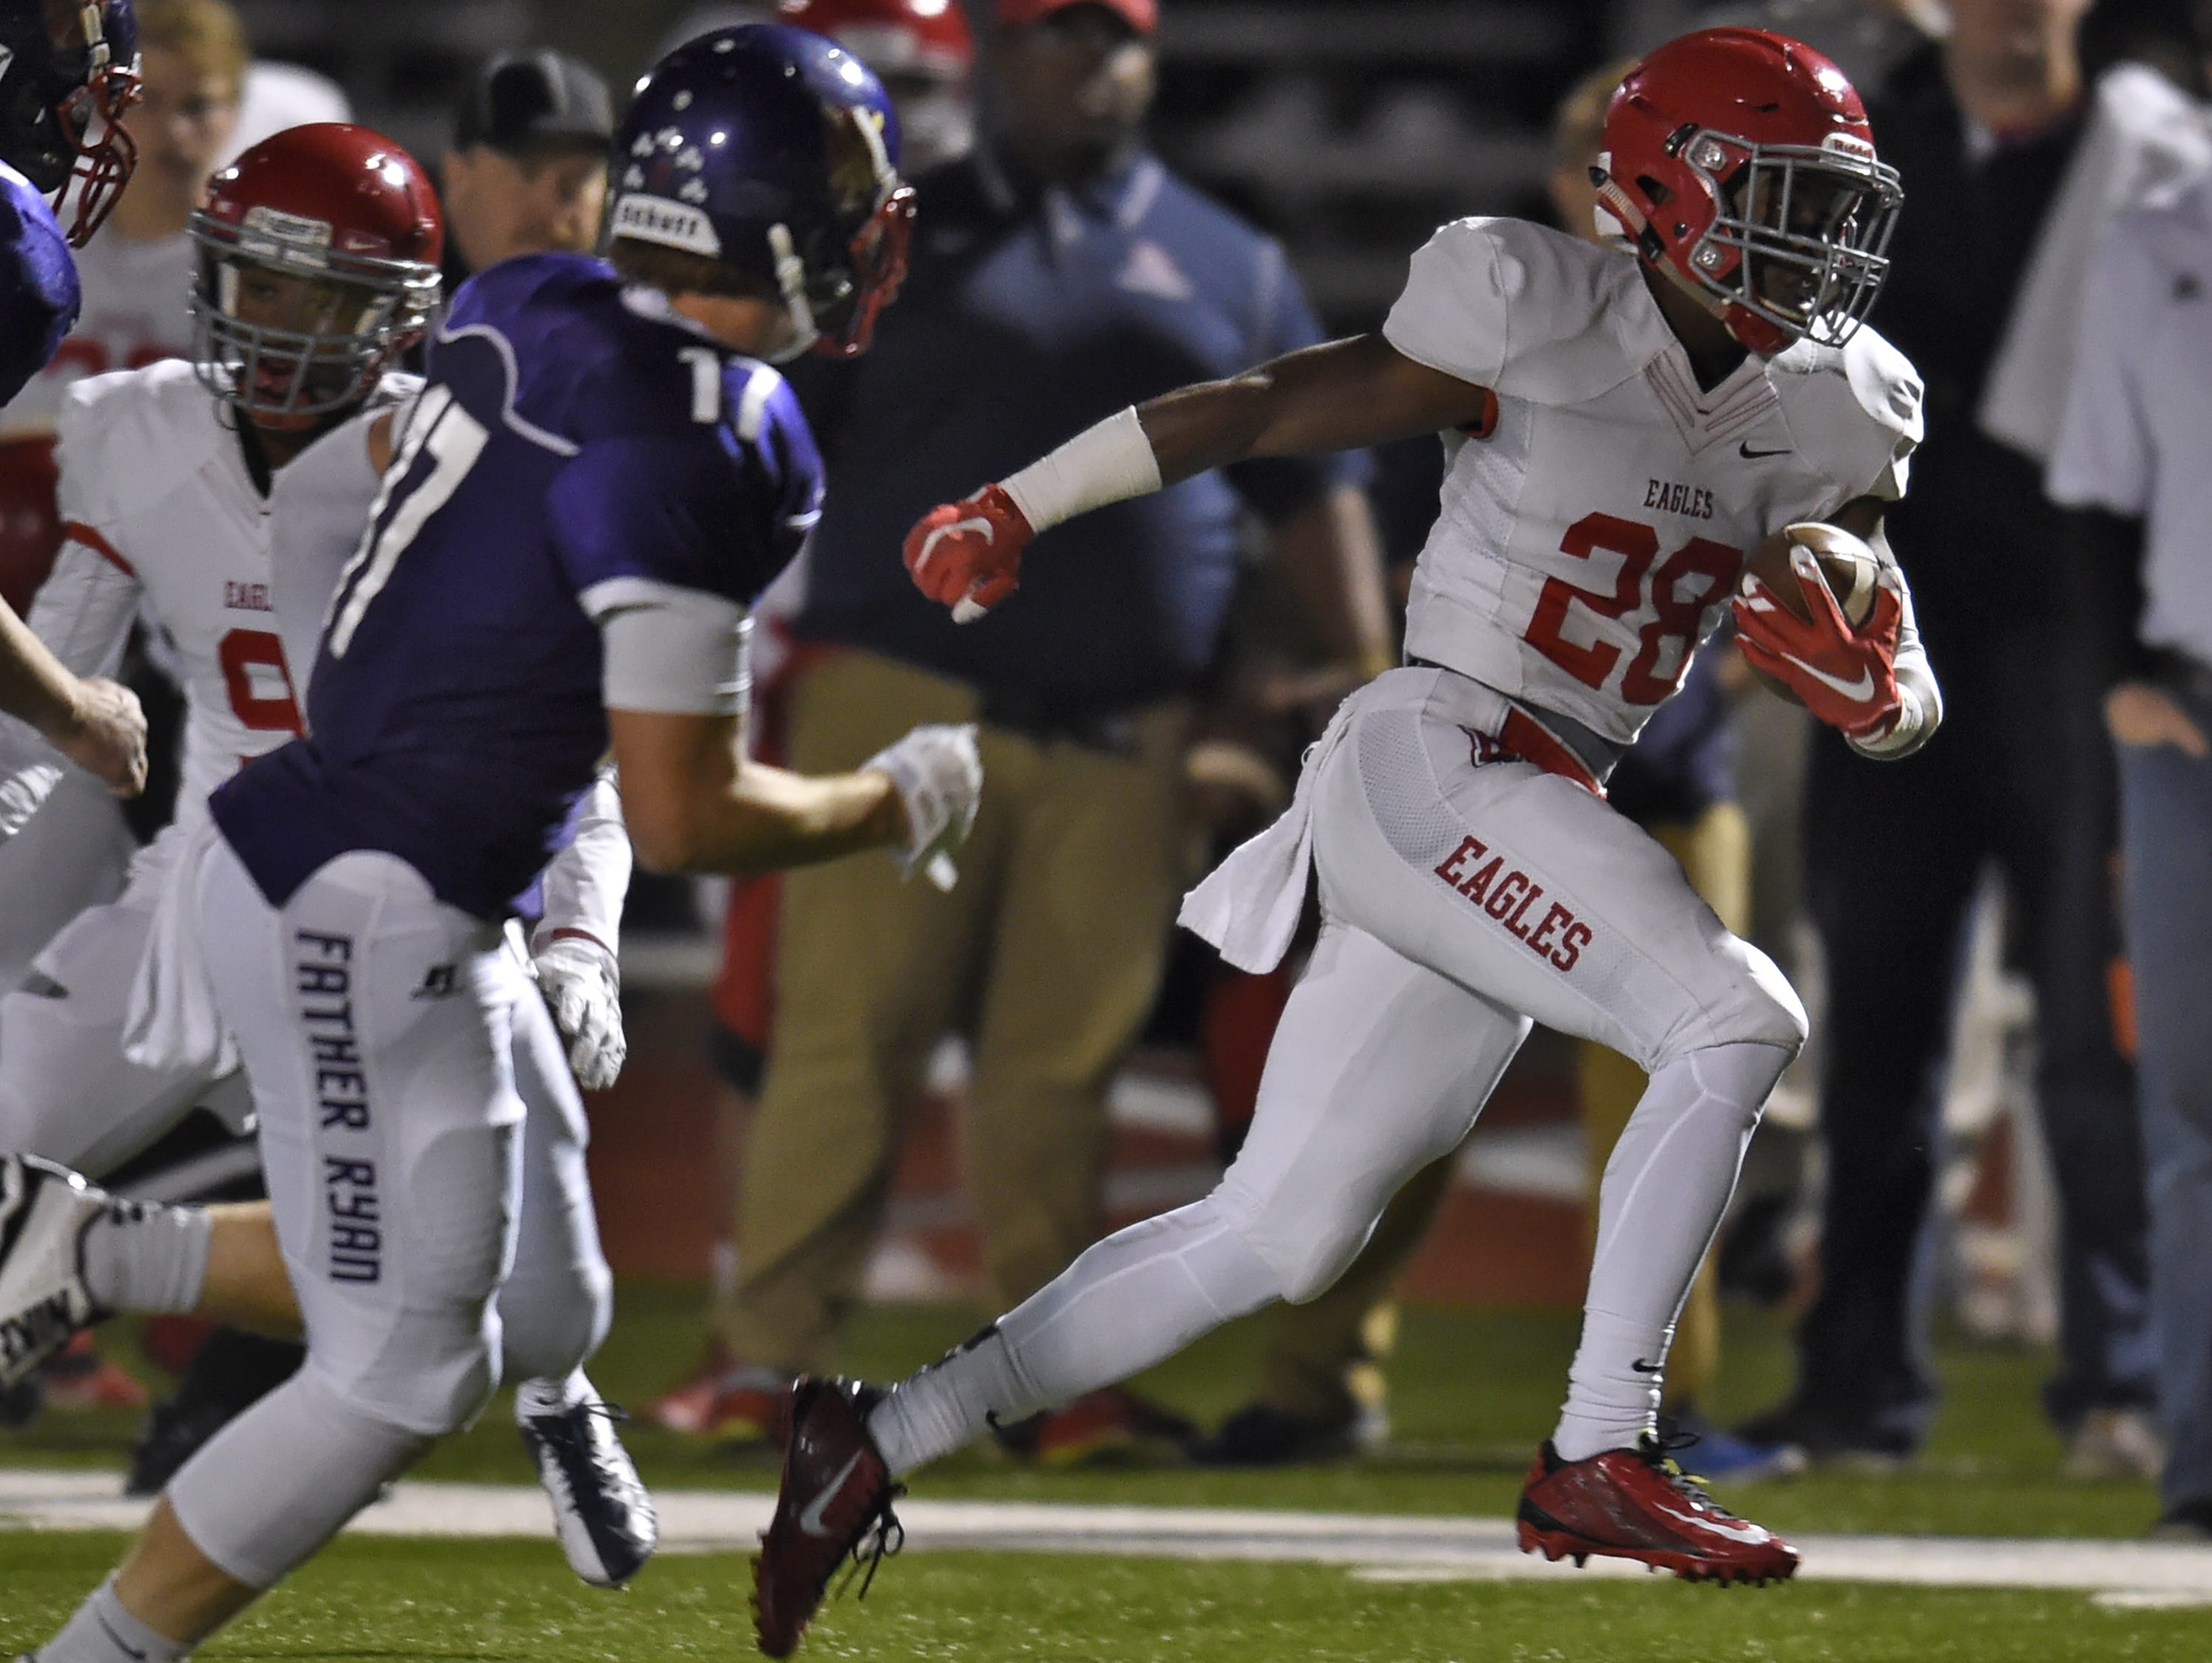 Brentwood Academy running back Daniel Taylor (28) races past the Father Ryan defense during last week's win.